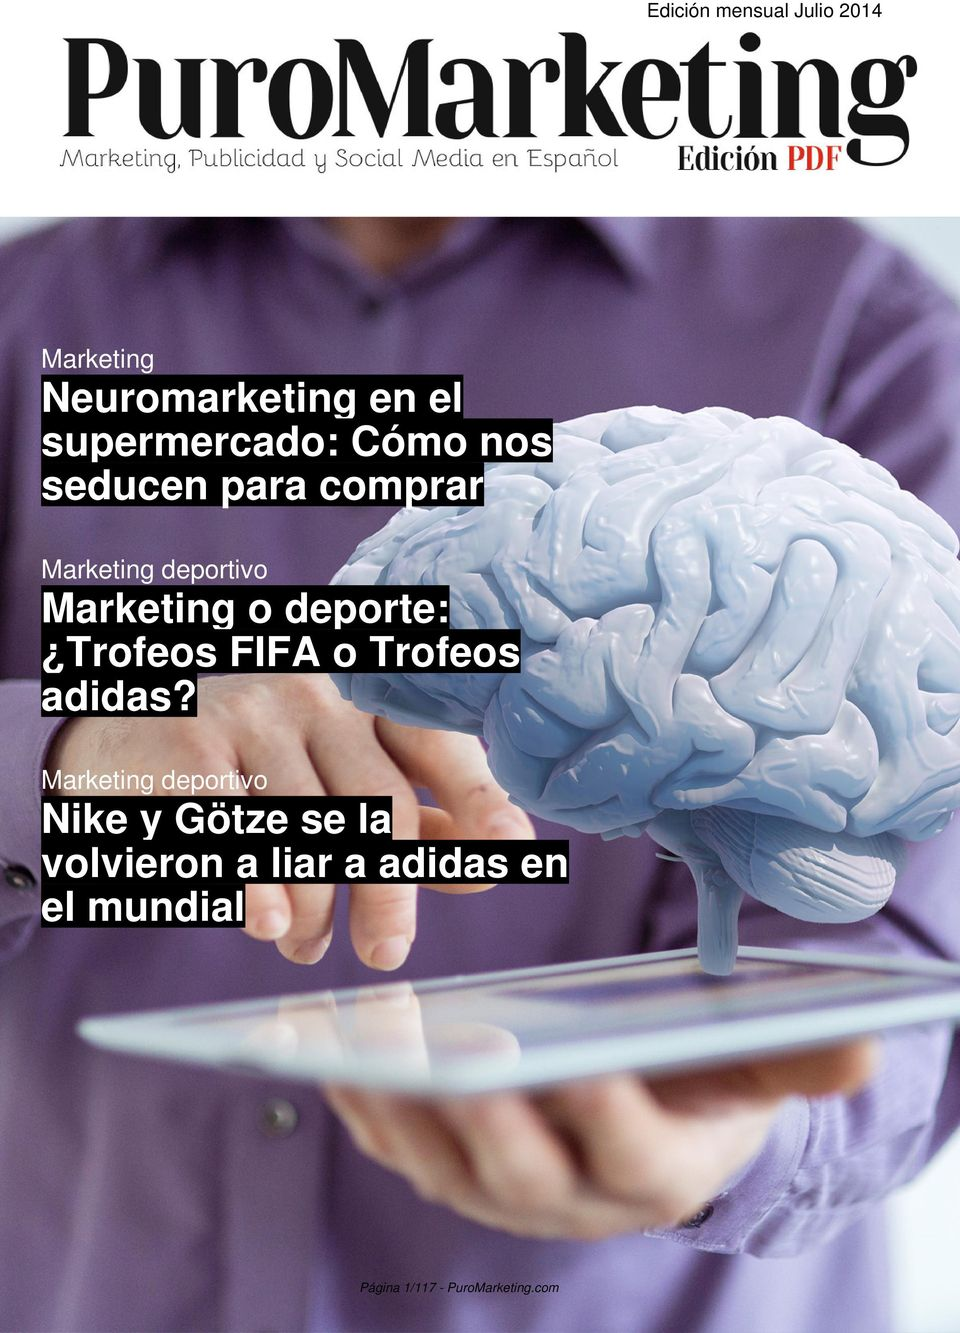 Marketing o deporte: Trofeos FIFA o Trofeos adidas?